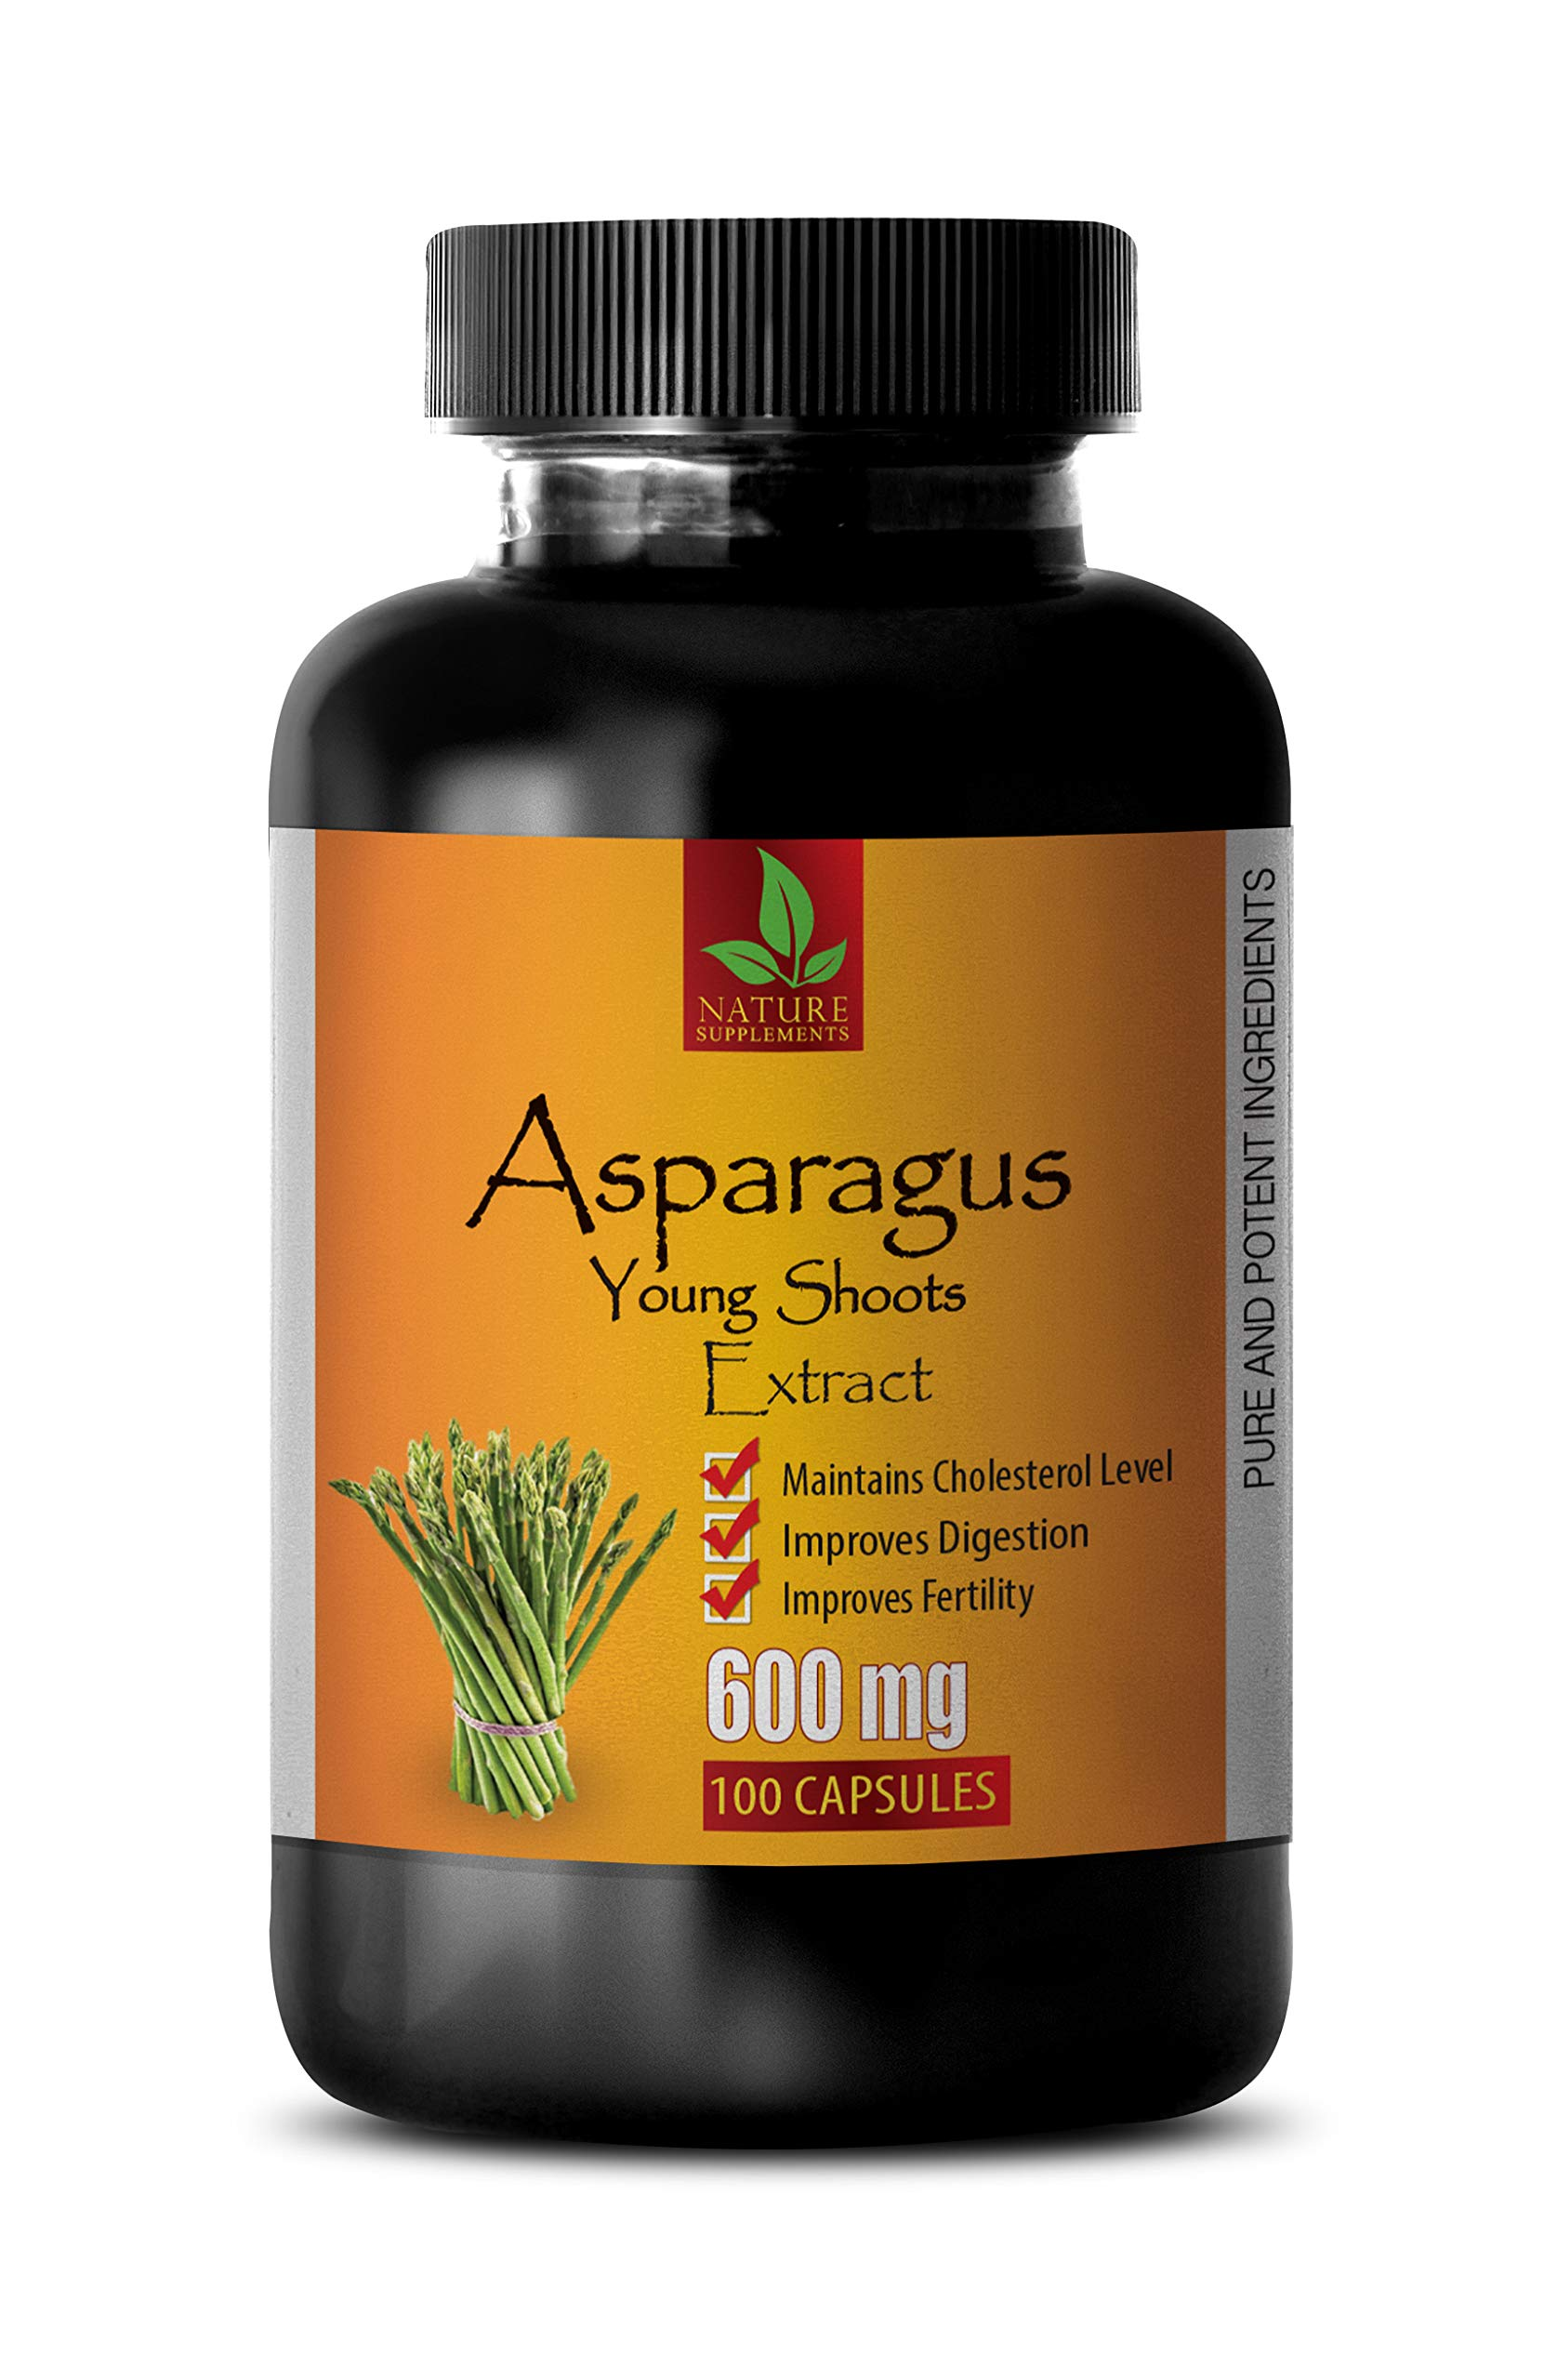 Diuretic and Anti-inflammatory Pill - Asparagus Young Shoots Extract 600 MG - Pure and Potent Ingredients - Asparagus Capsules 600mg - 1 Bottle 100 Capsules